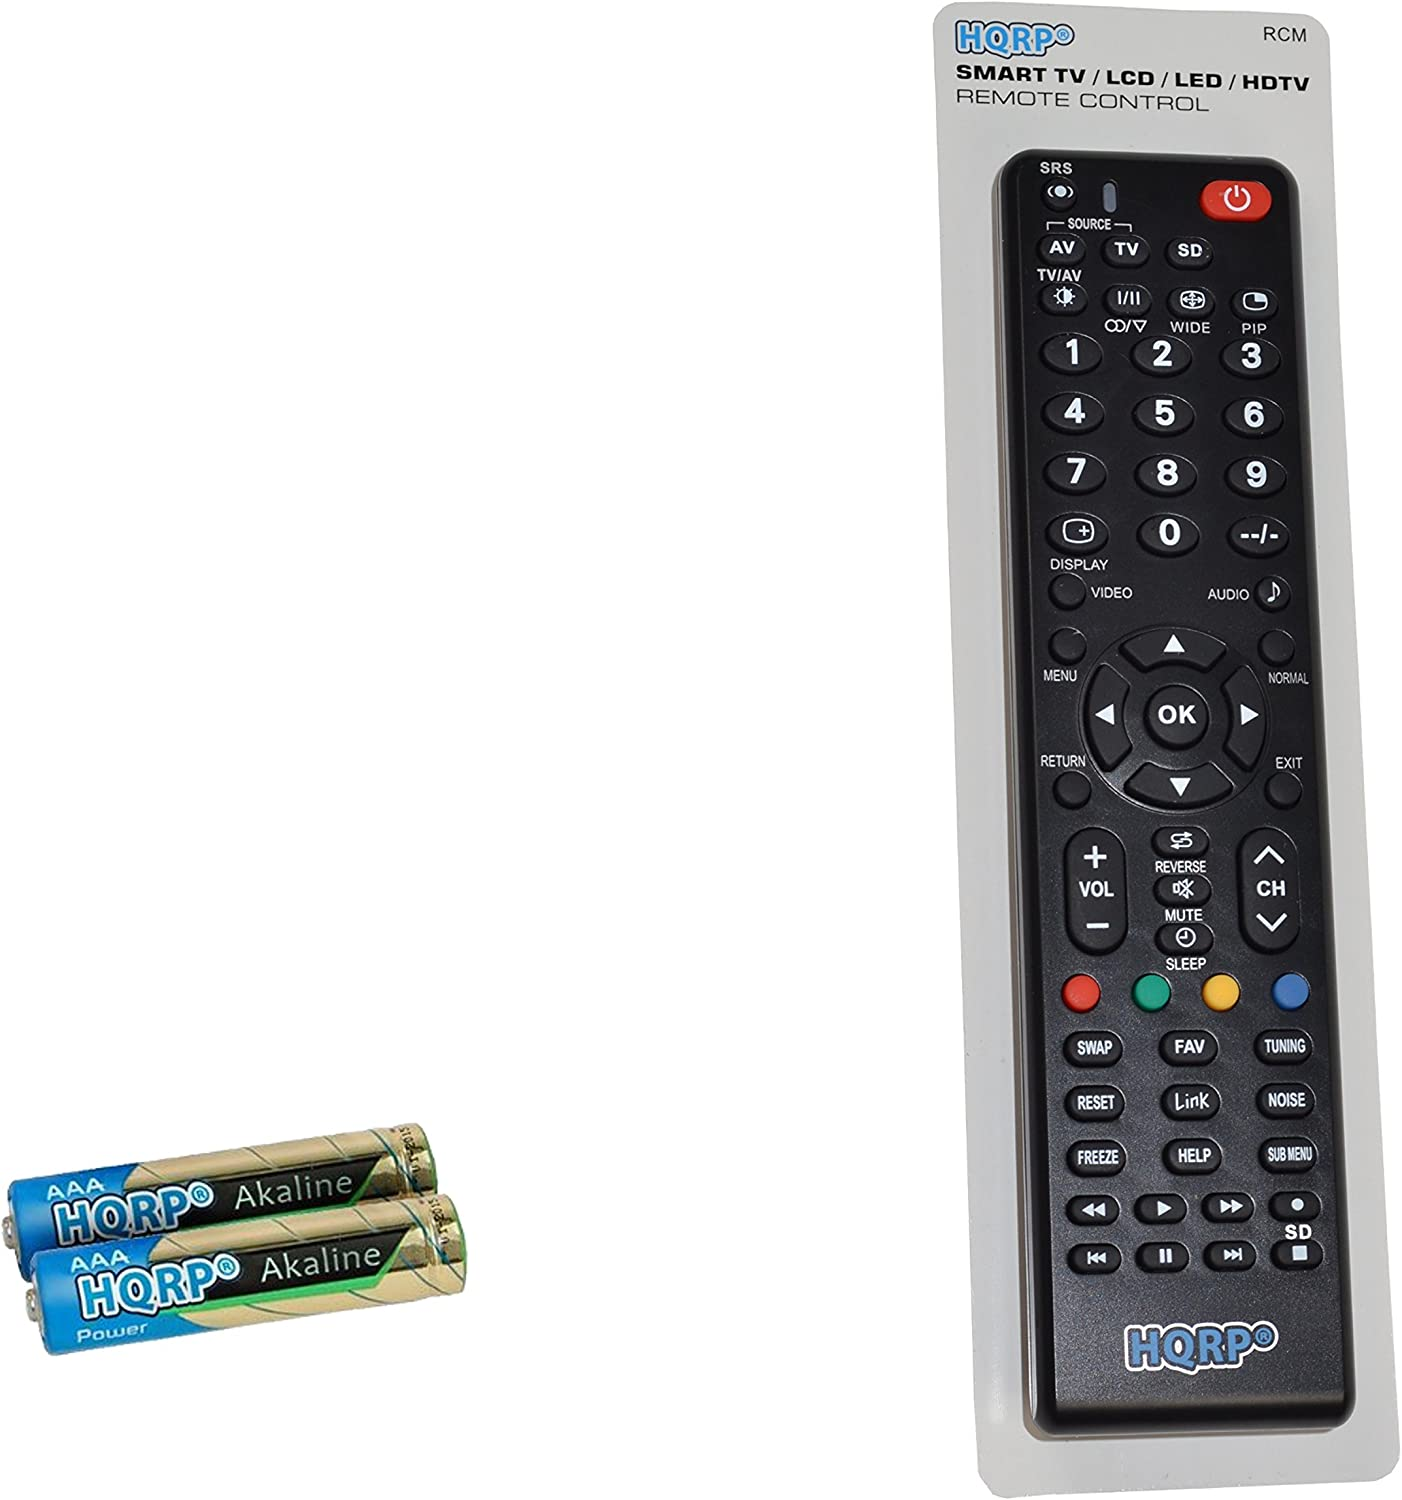 HQRP Remote Control fits Panasonic EUR7627Z20 PT-43LCX64 PT-44LCX65 PT-50DL54 PT-50LCX64 LCD LED HD TV Smart 1080p 3D Ultra 4K Plasma